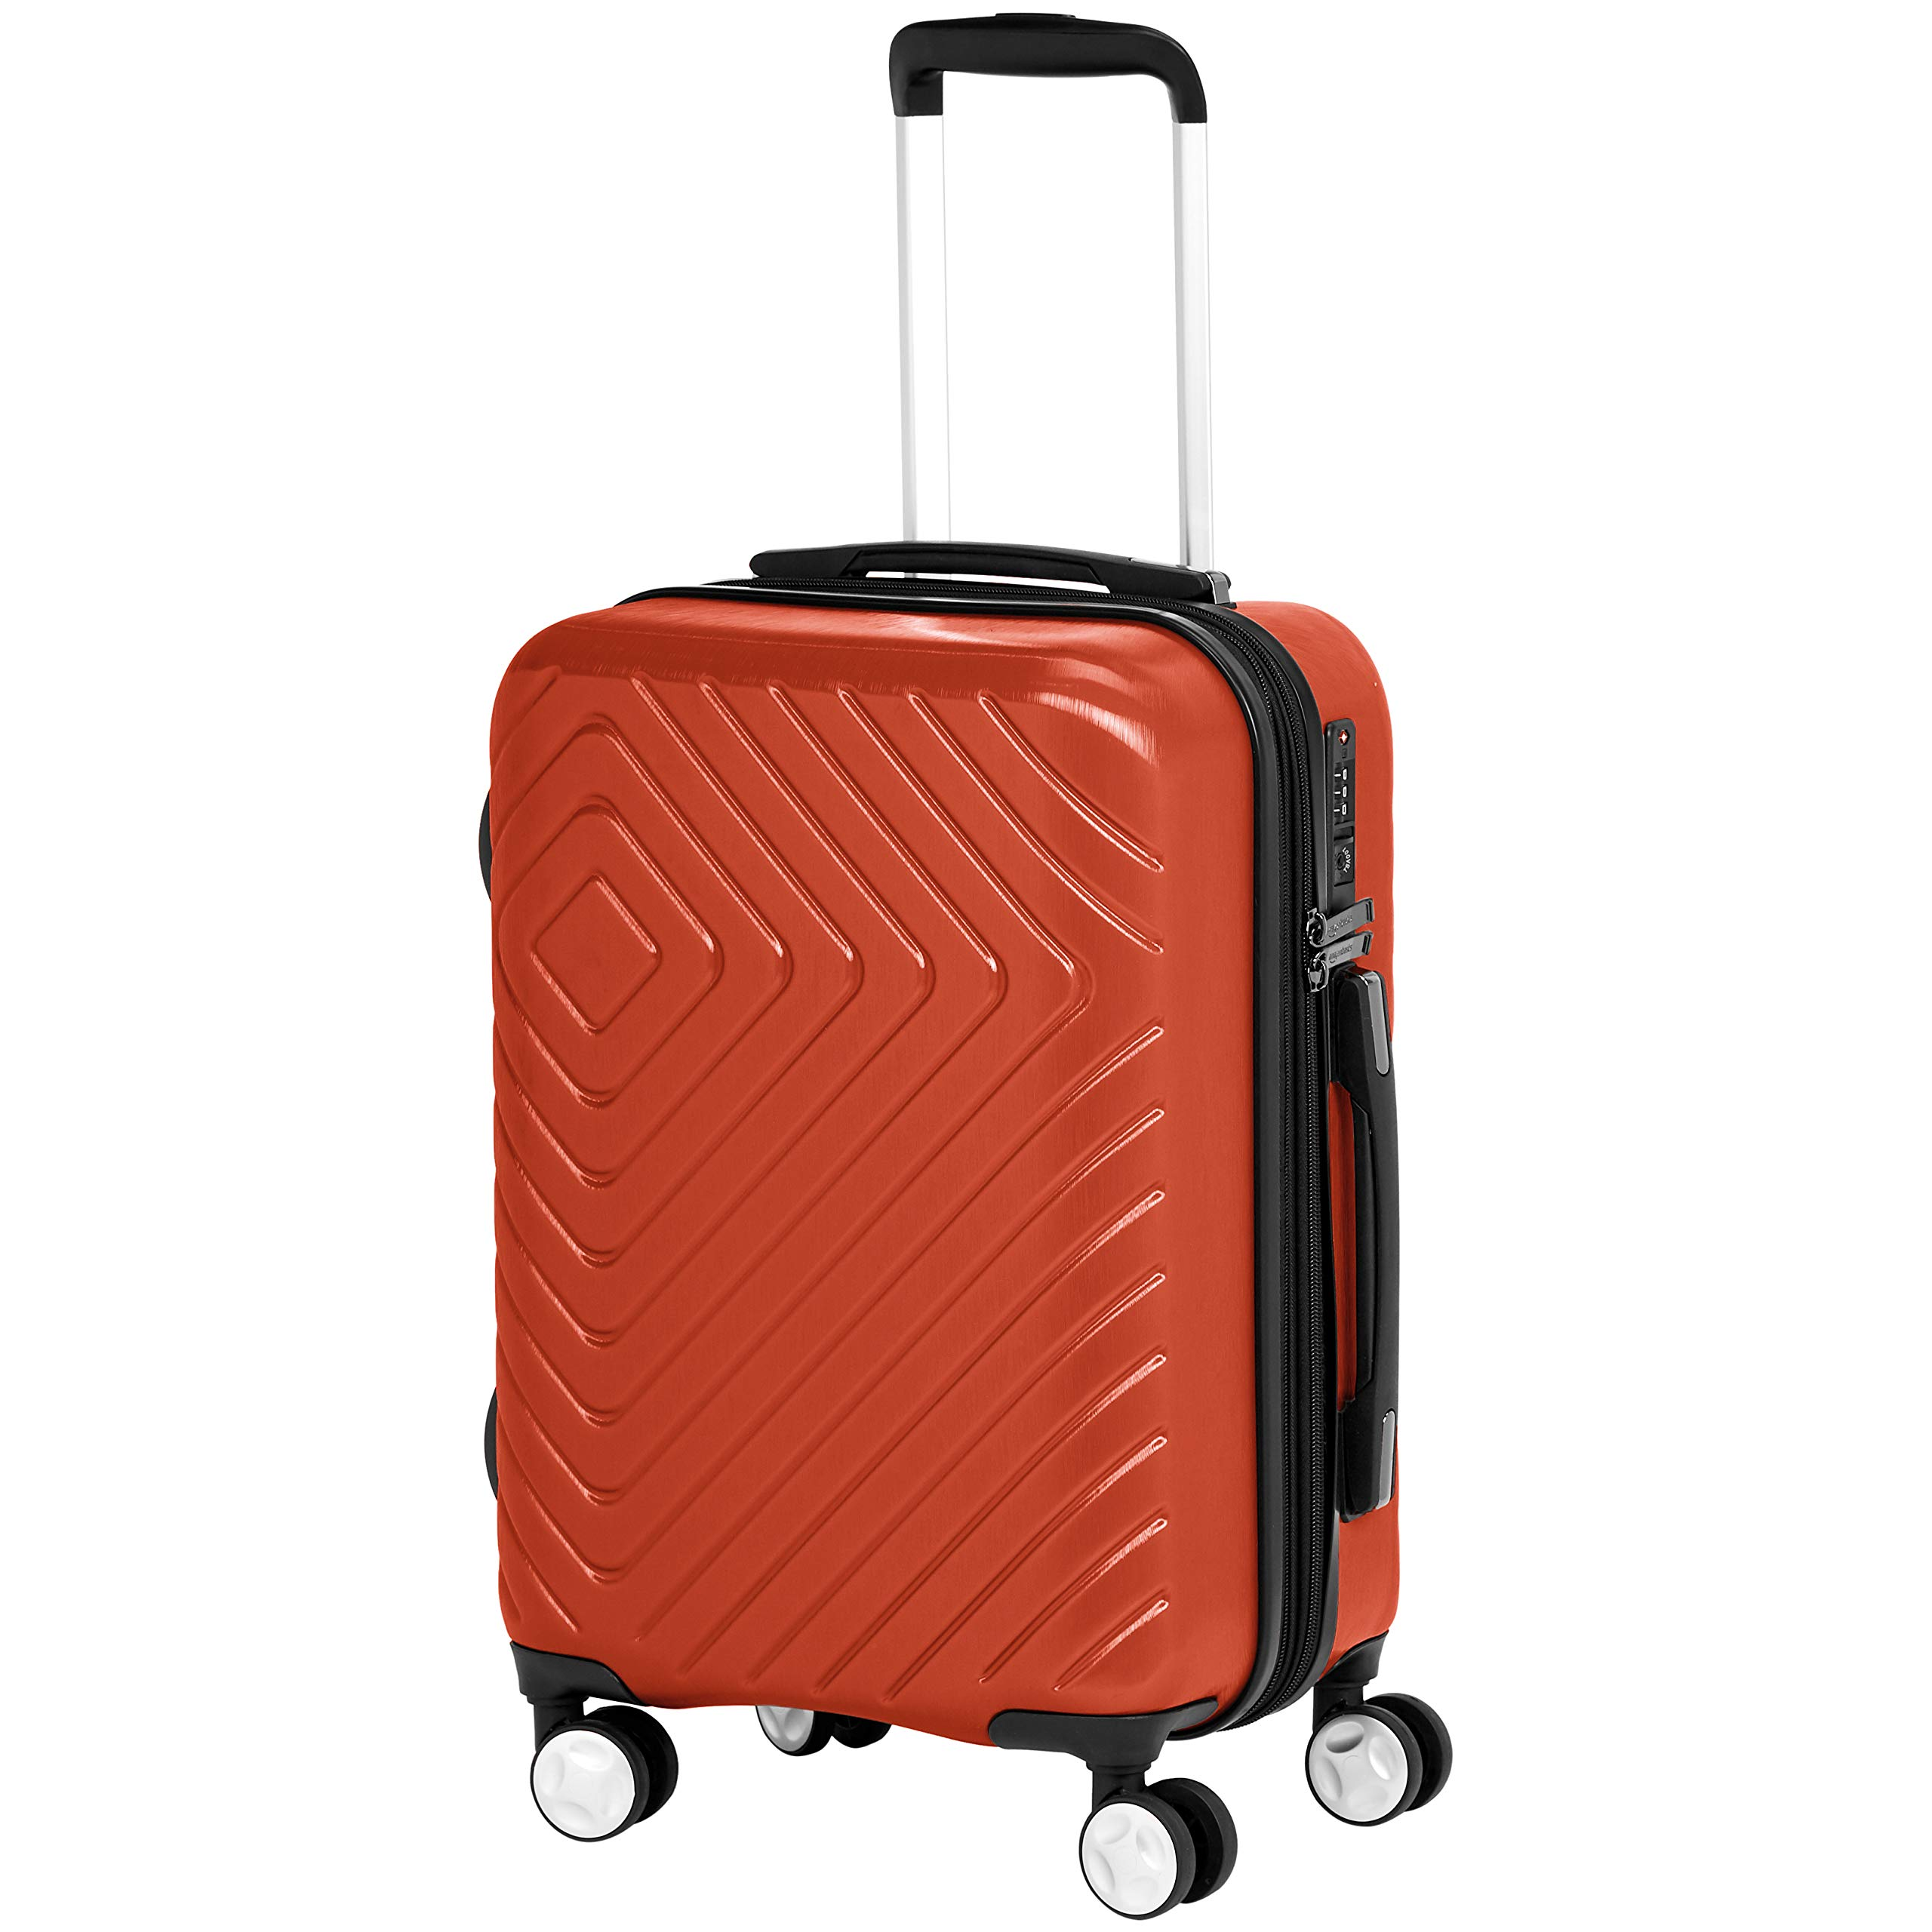 AmazonBasics Geometric Hard Shell Carry-On Rolling Spinner Suitcase Luggage - 20 Inch, Sunset